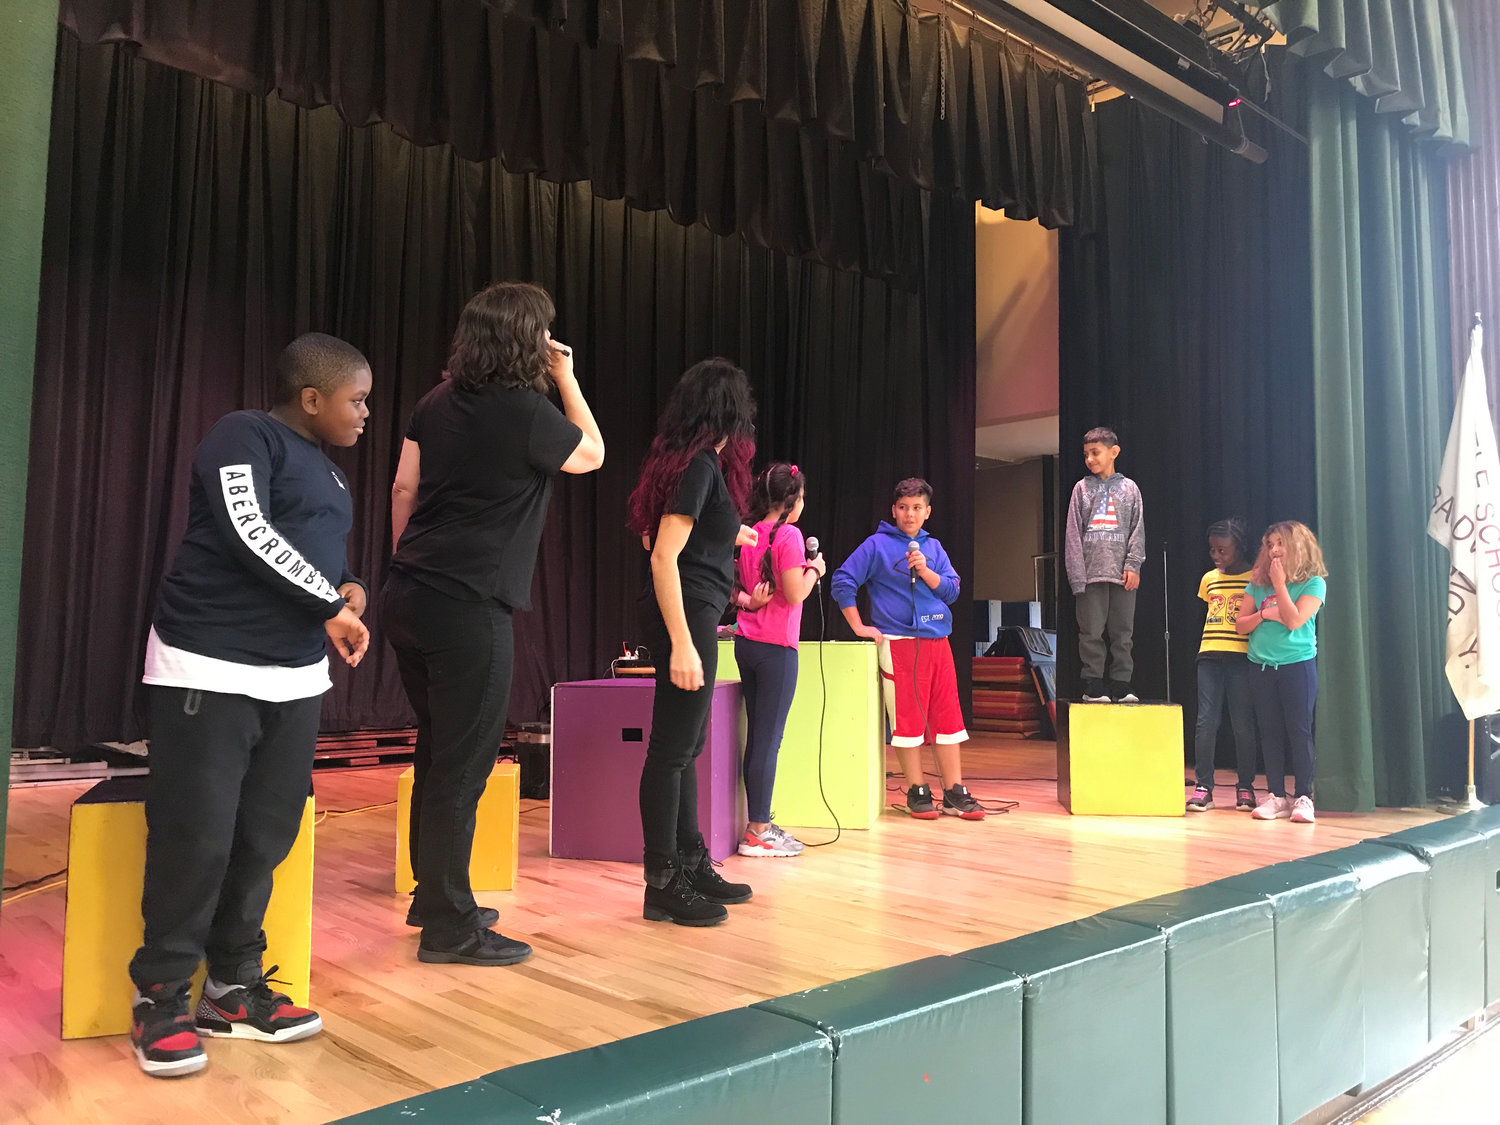 The students learned about steps to prevent bullying.